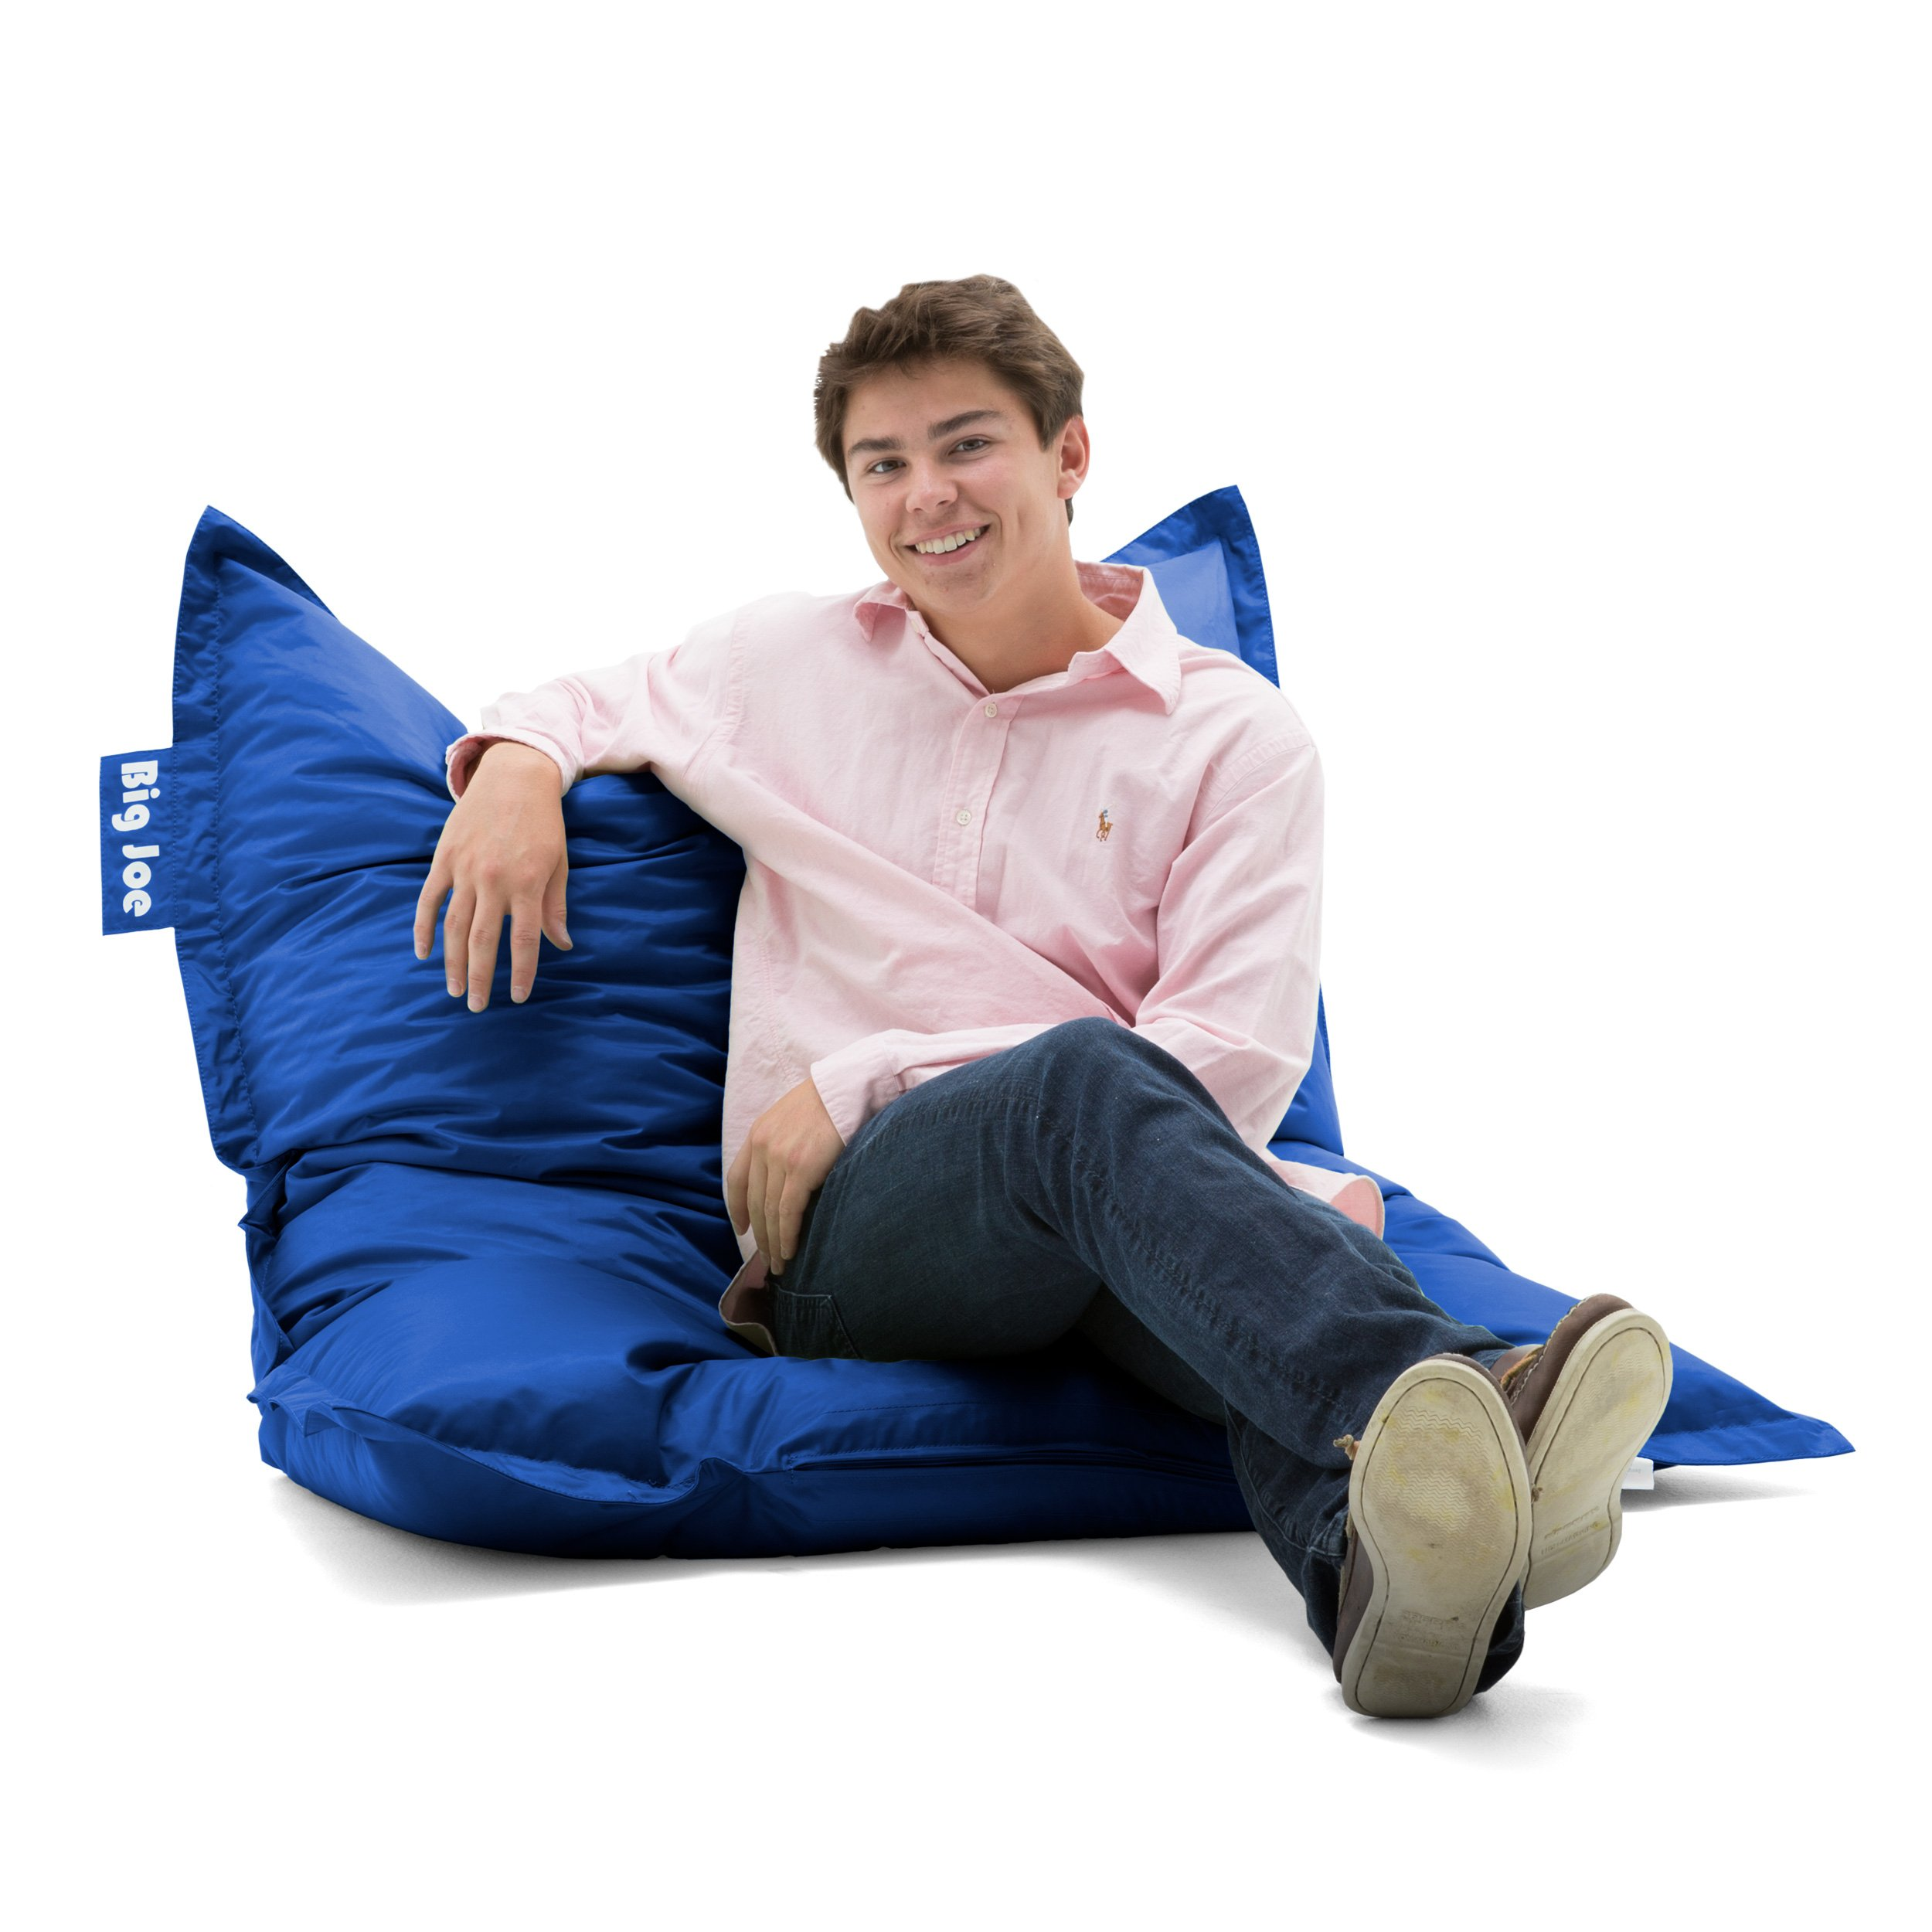 Big Joe 640614 Original Bean Bag Chair, Sapphire